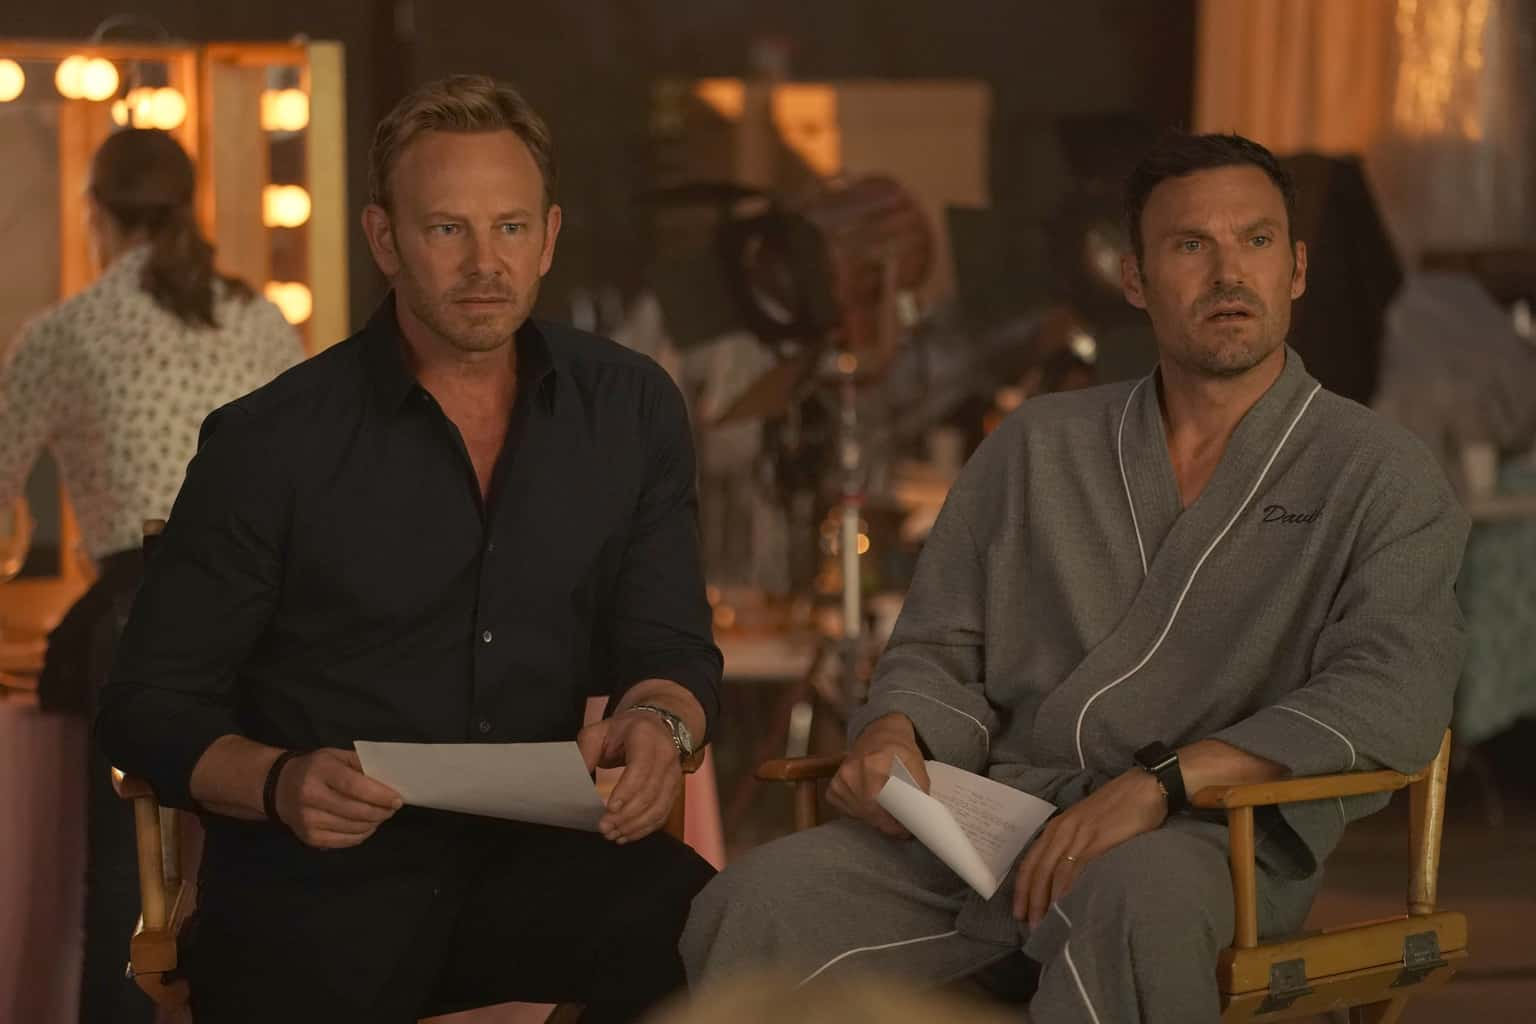 Preview — BH90210 Season 1 Episode 5: Picture's Up | Tell